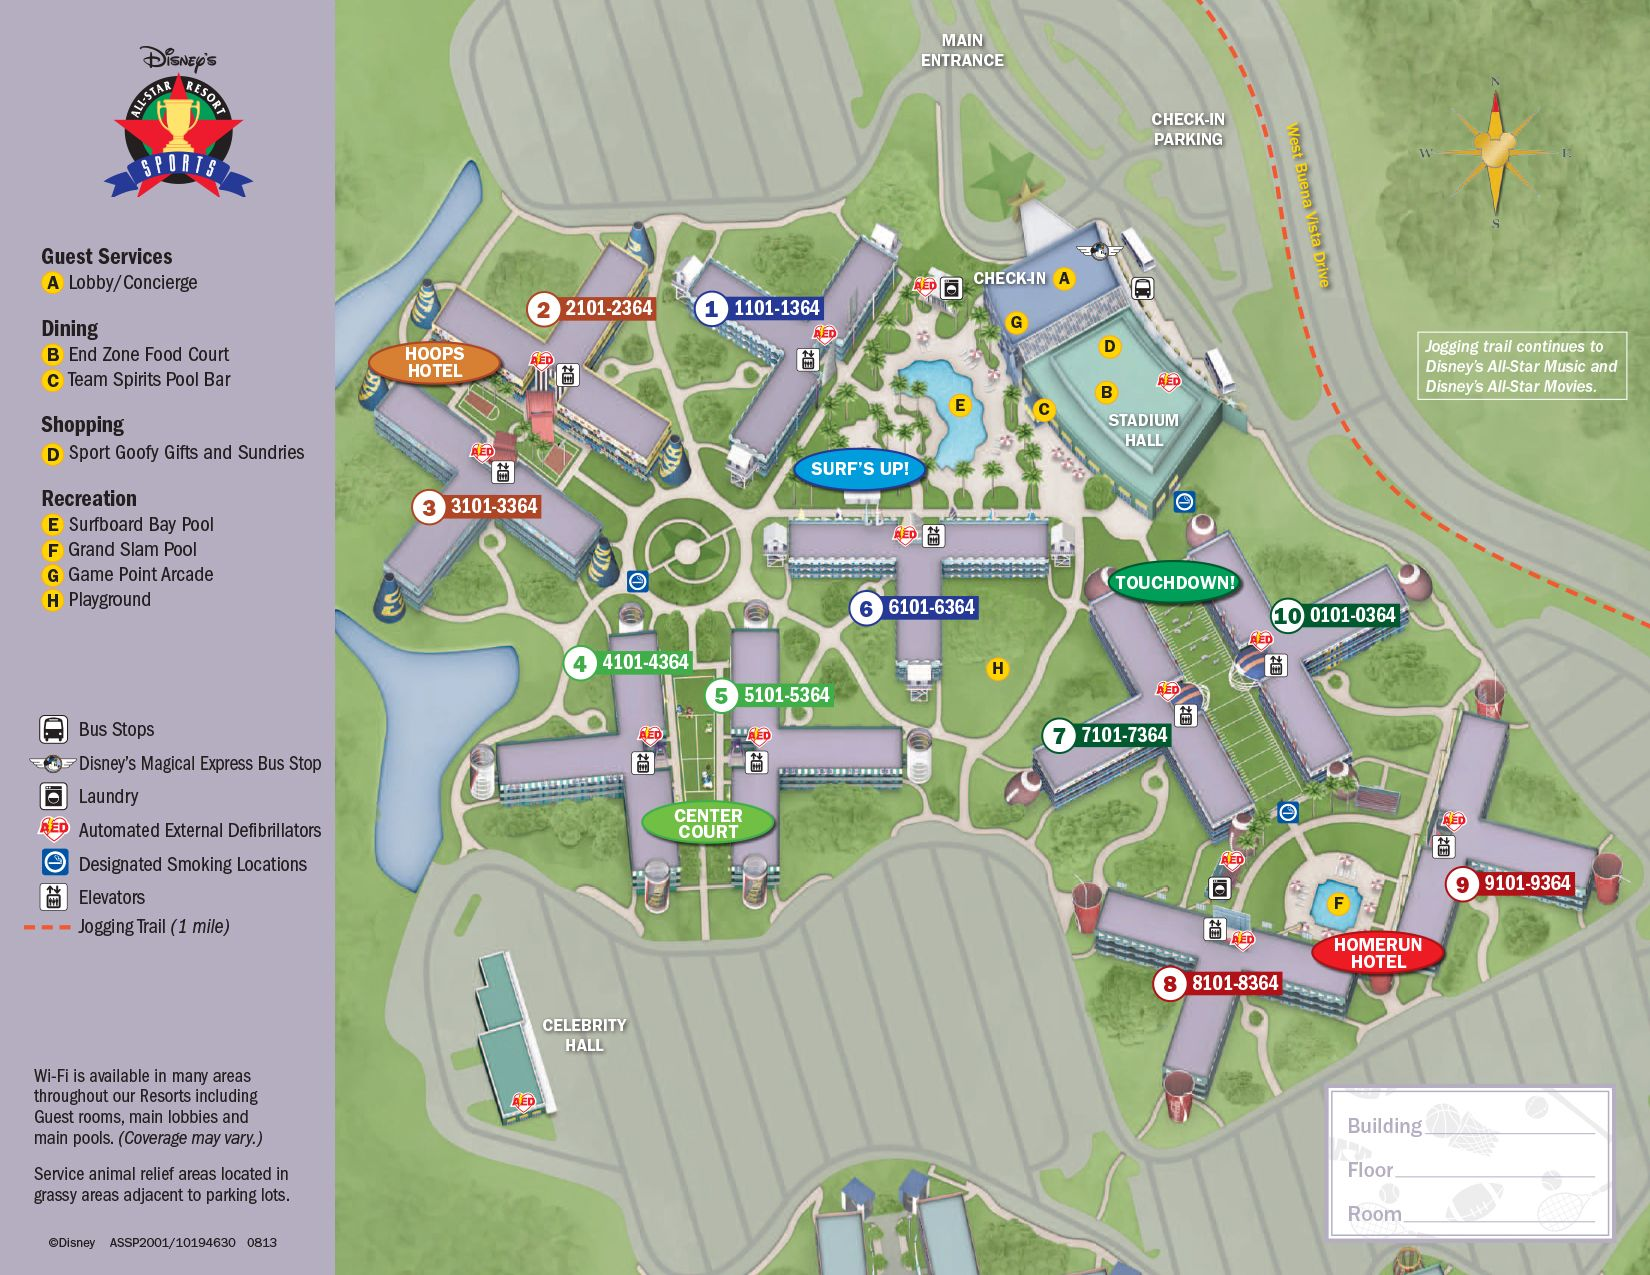 All Star Sports Resort Map Walt Disney World Hoping We Get Our Room Request  In September!